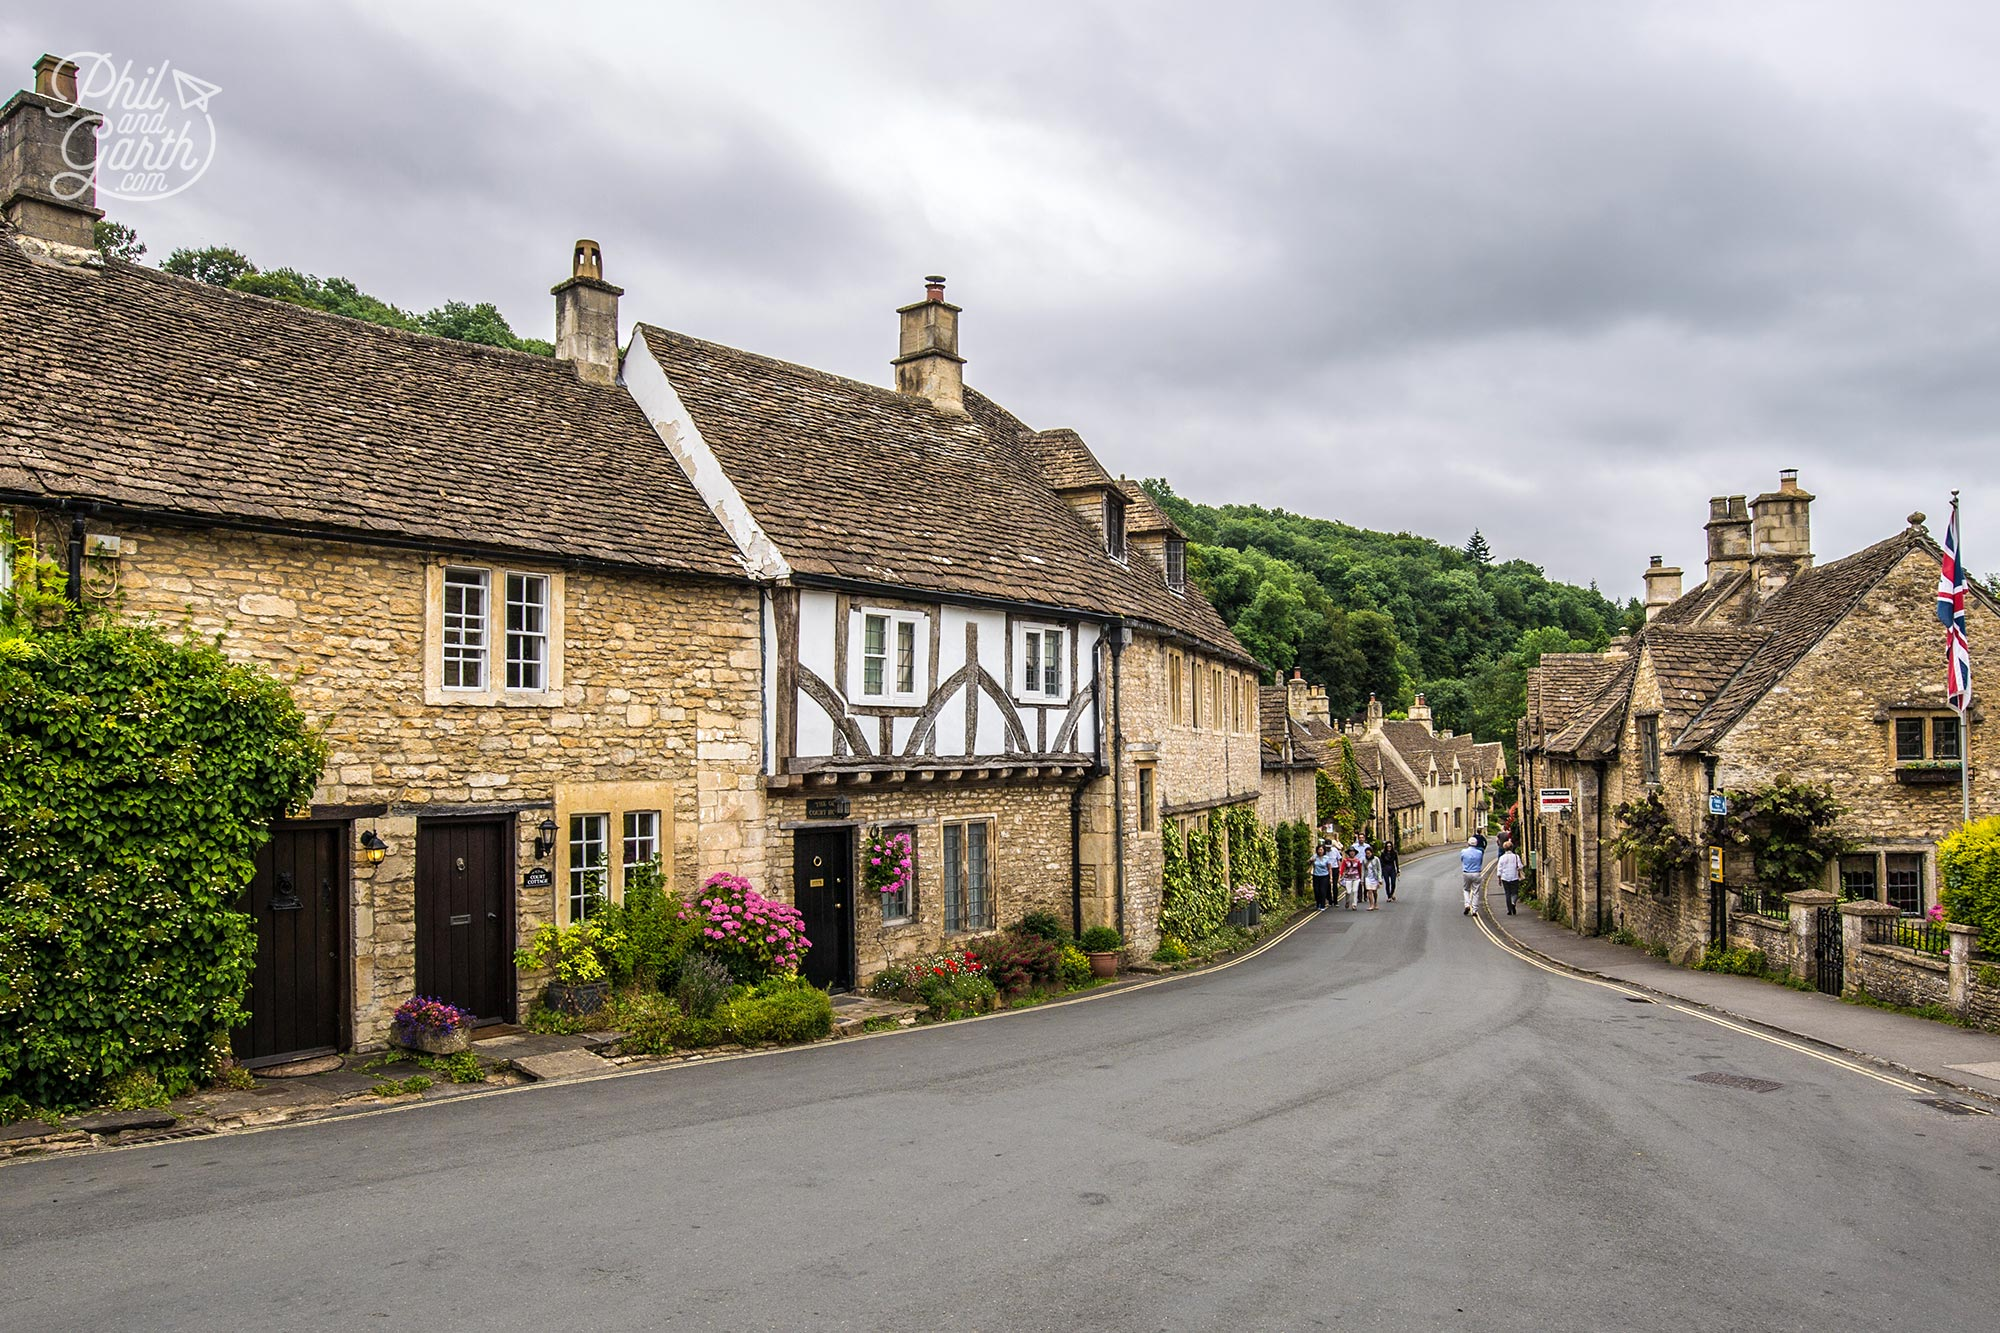 Picture postcard homes of Castle Combe